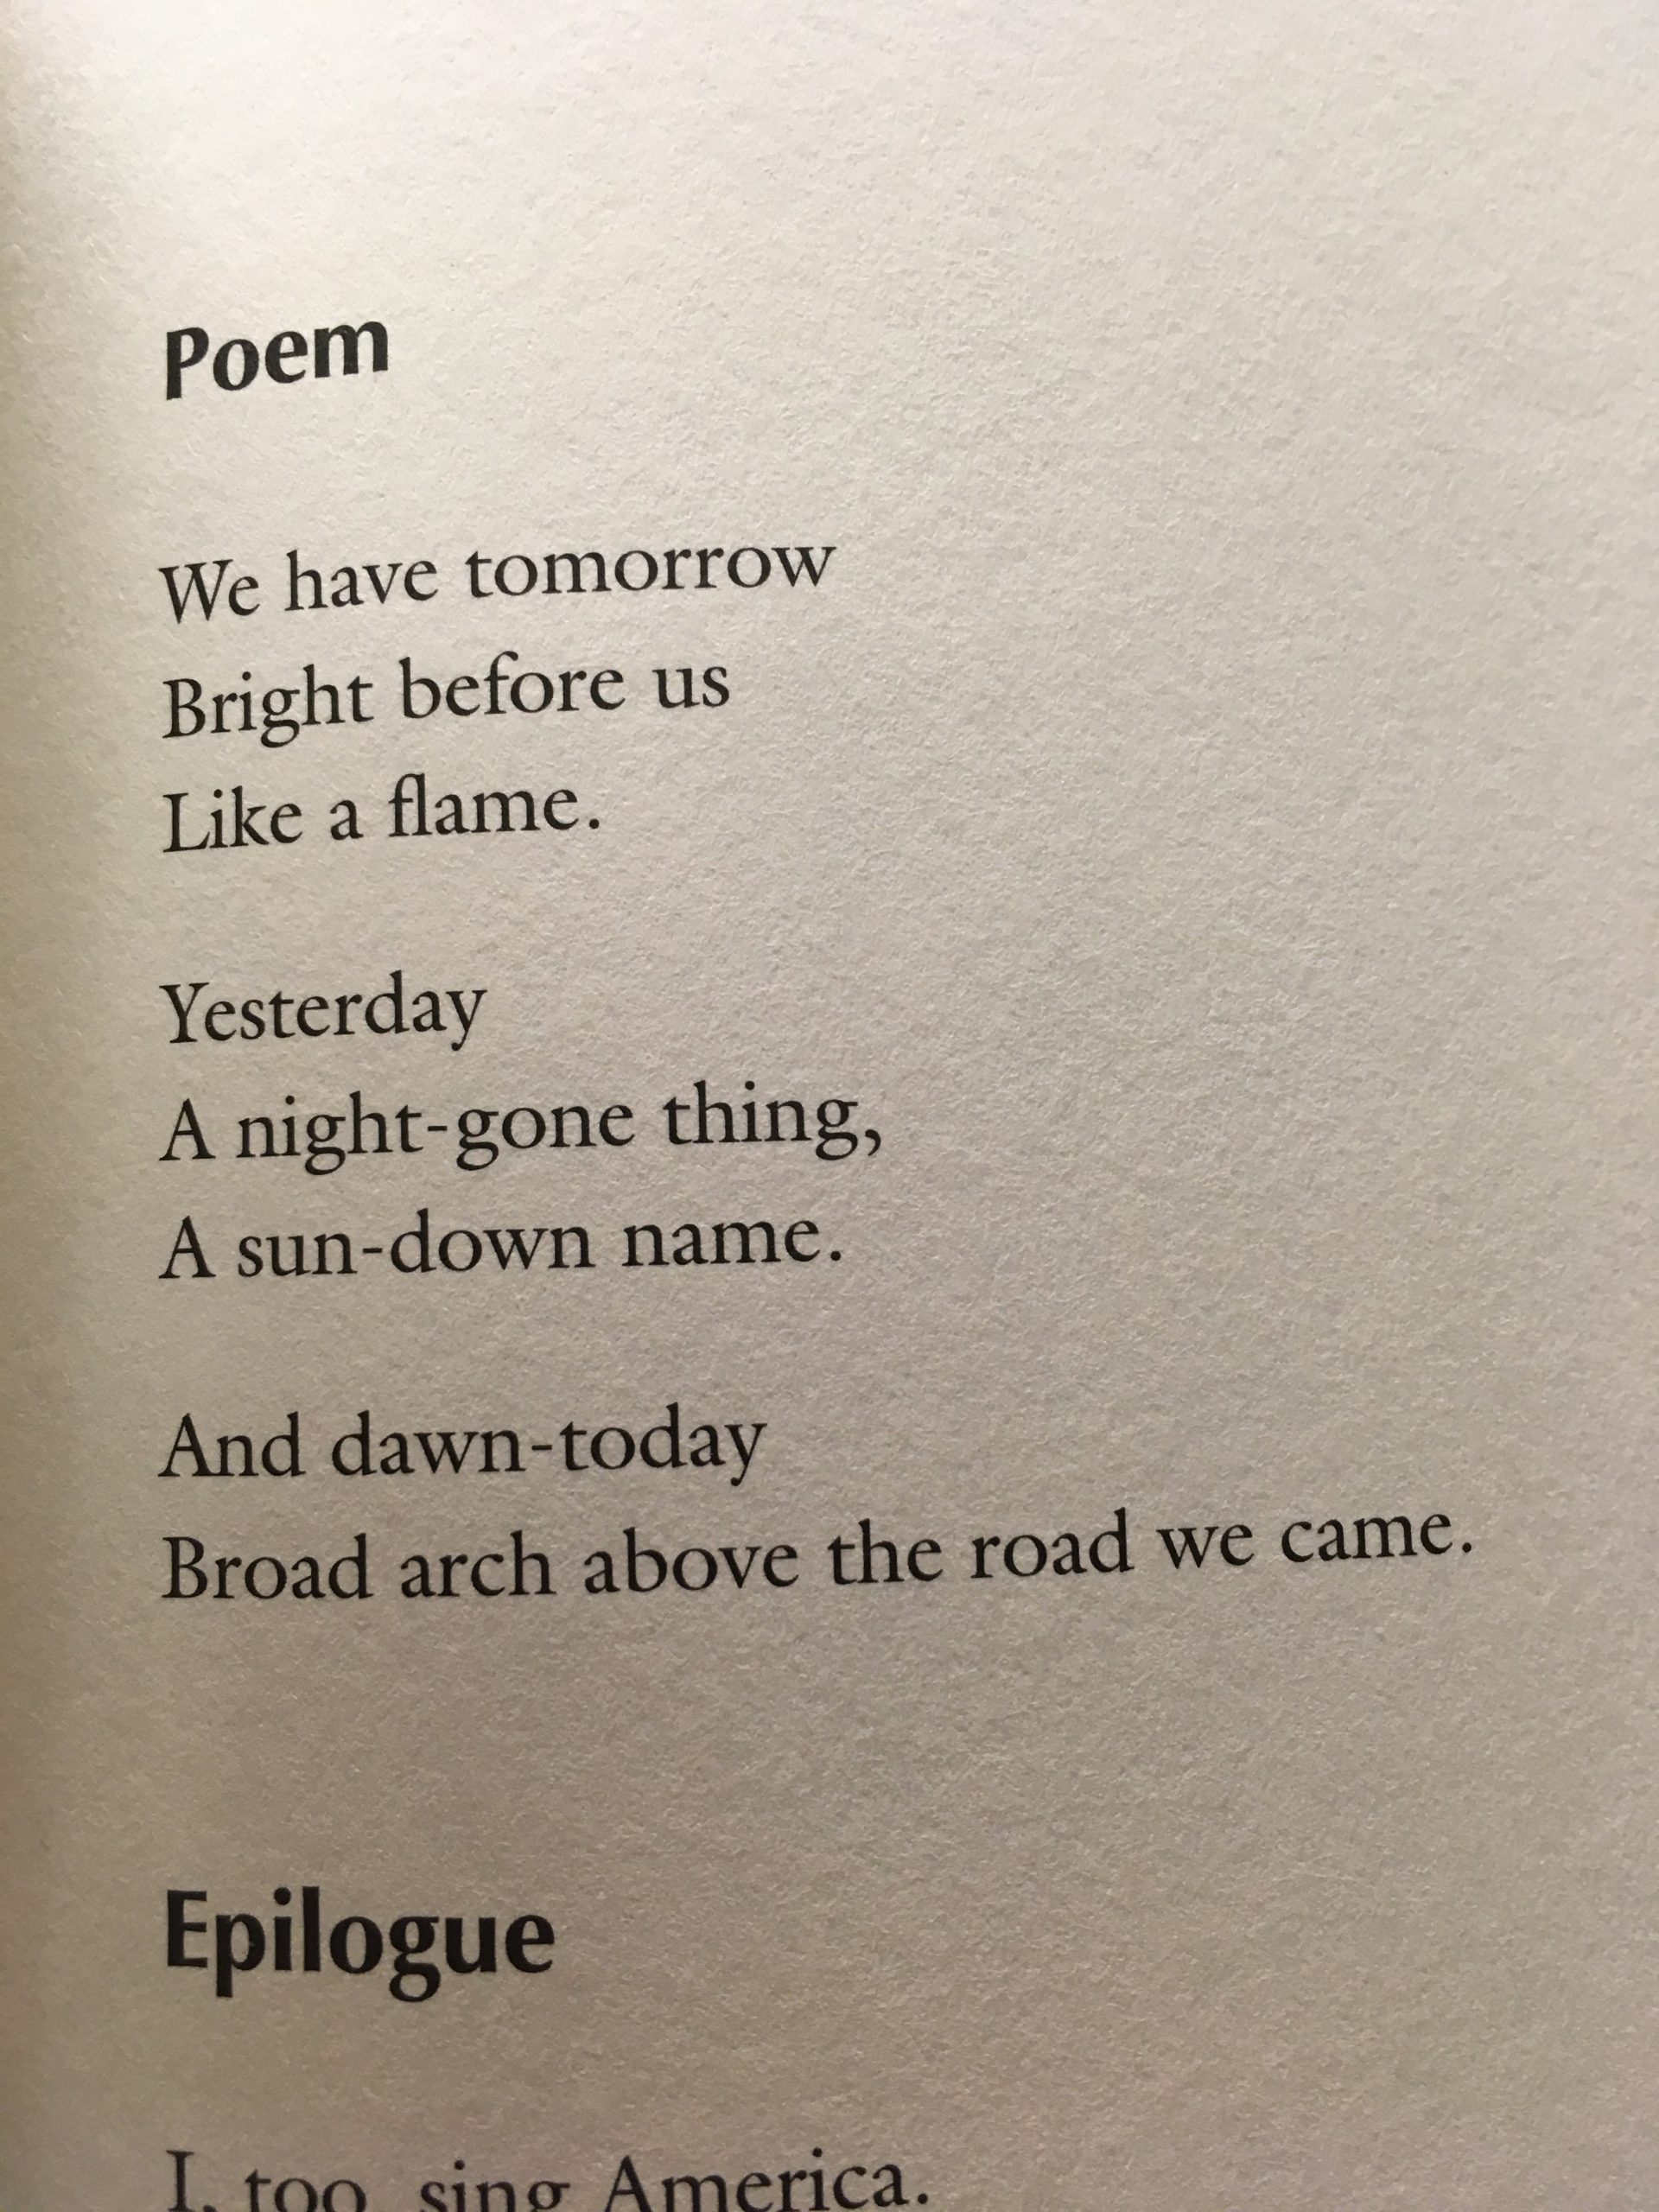 Page from Langston Hughes, Poem, The Poems, 1921-1940, PS3515.U274 2001